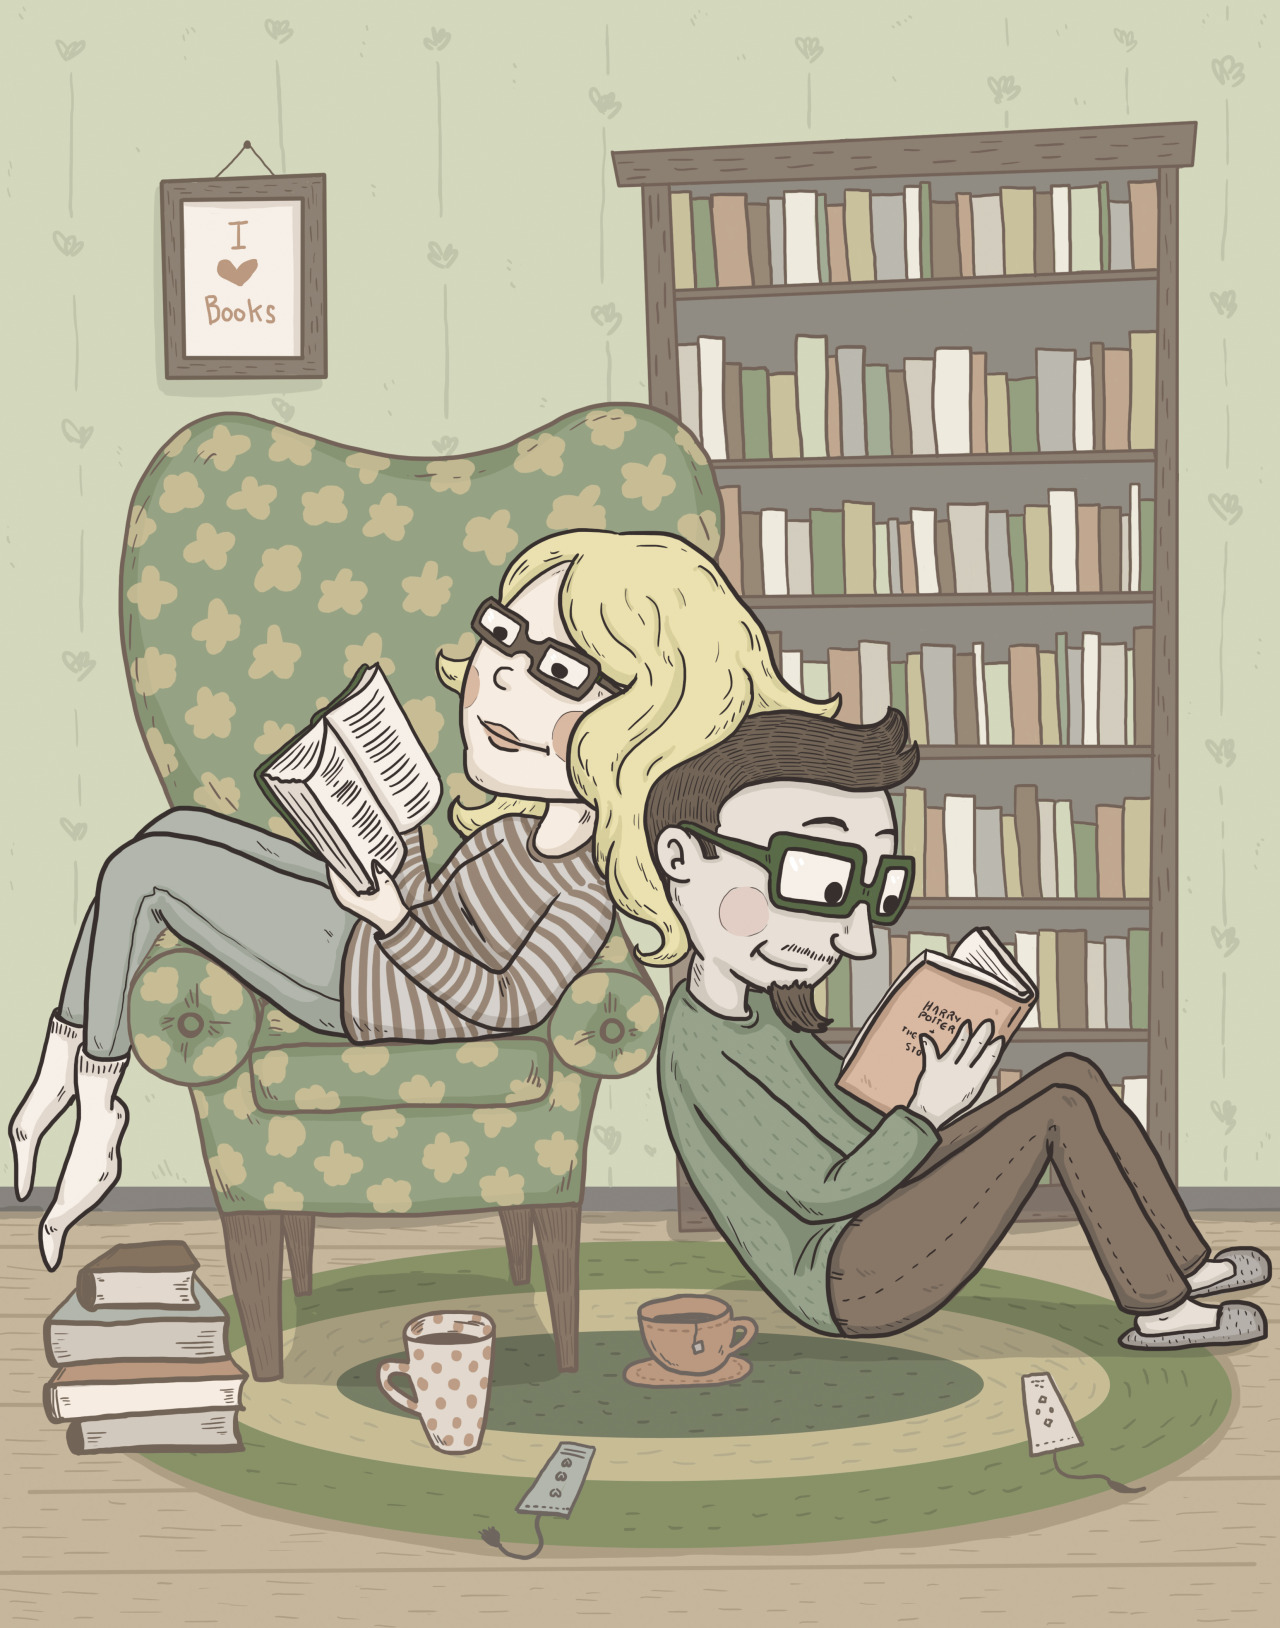 lawsonmuck:  It's summer time kids! Time to sit indoors and read.